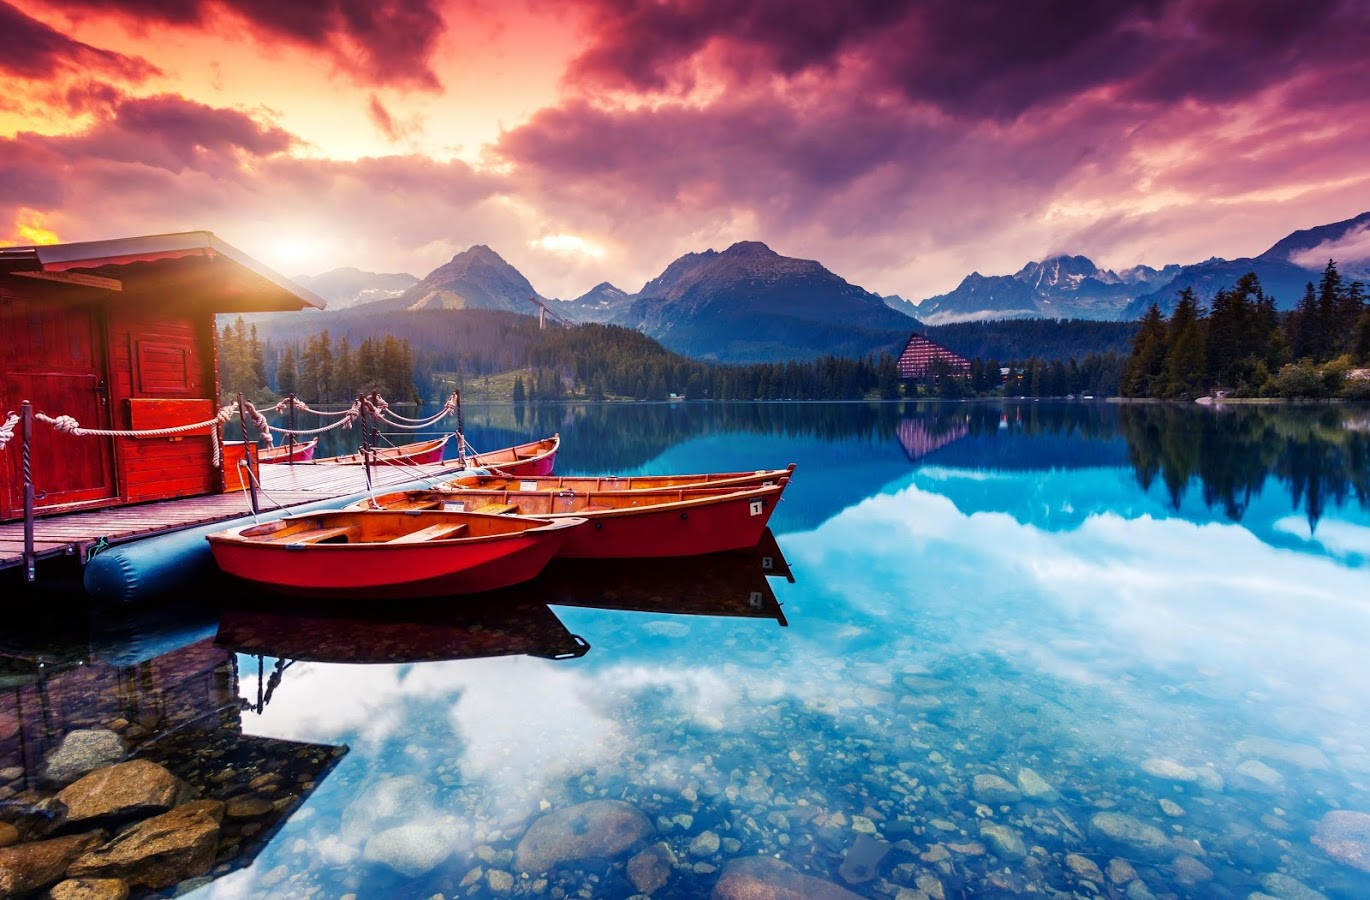 Boat Wallpaper   Android Apps on Google Play 1370x900